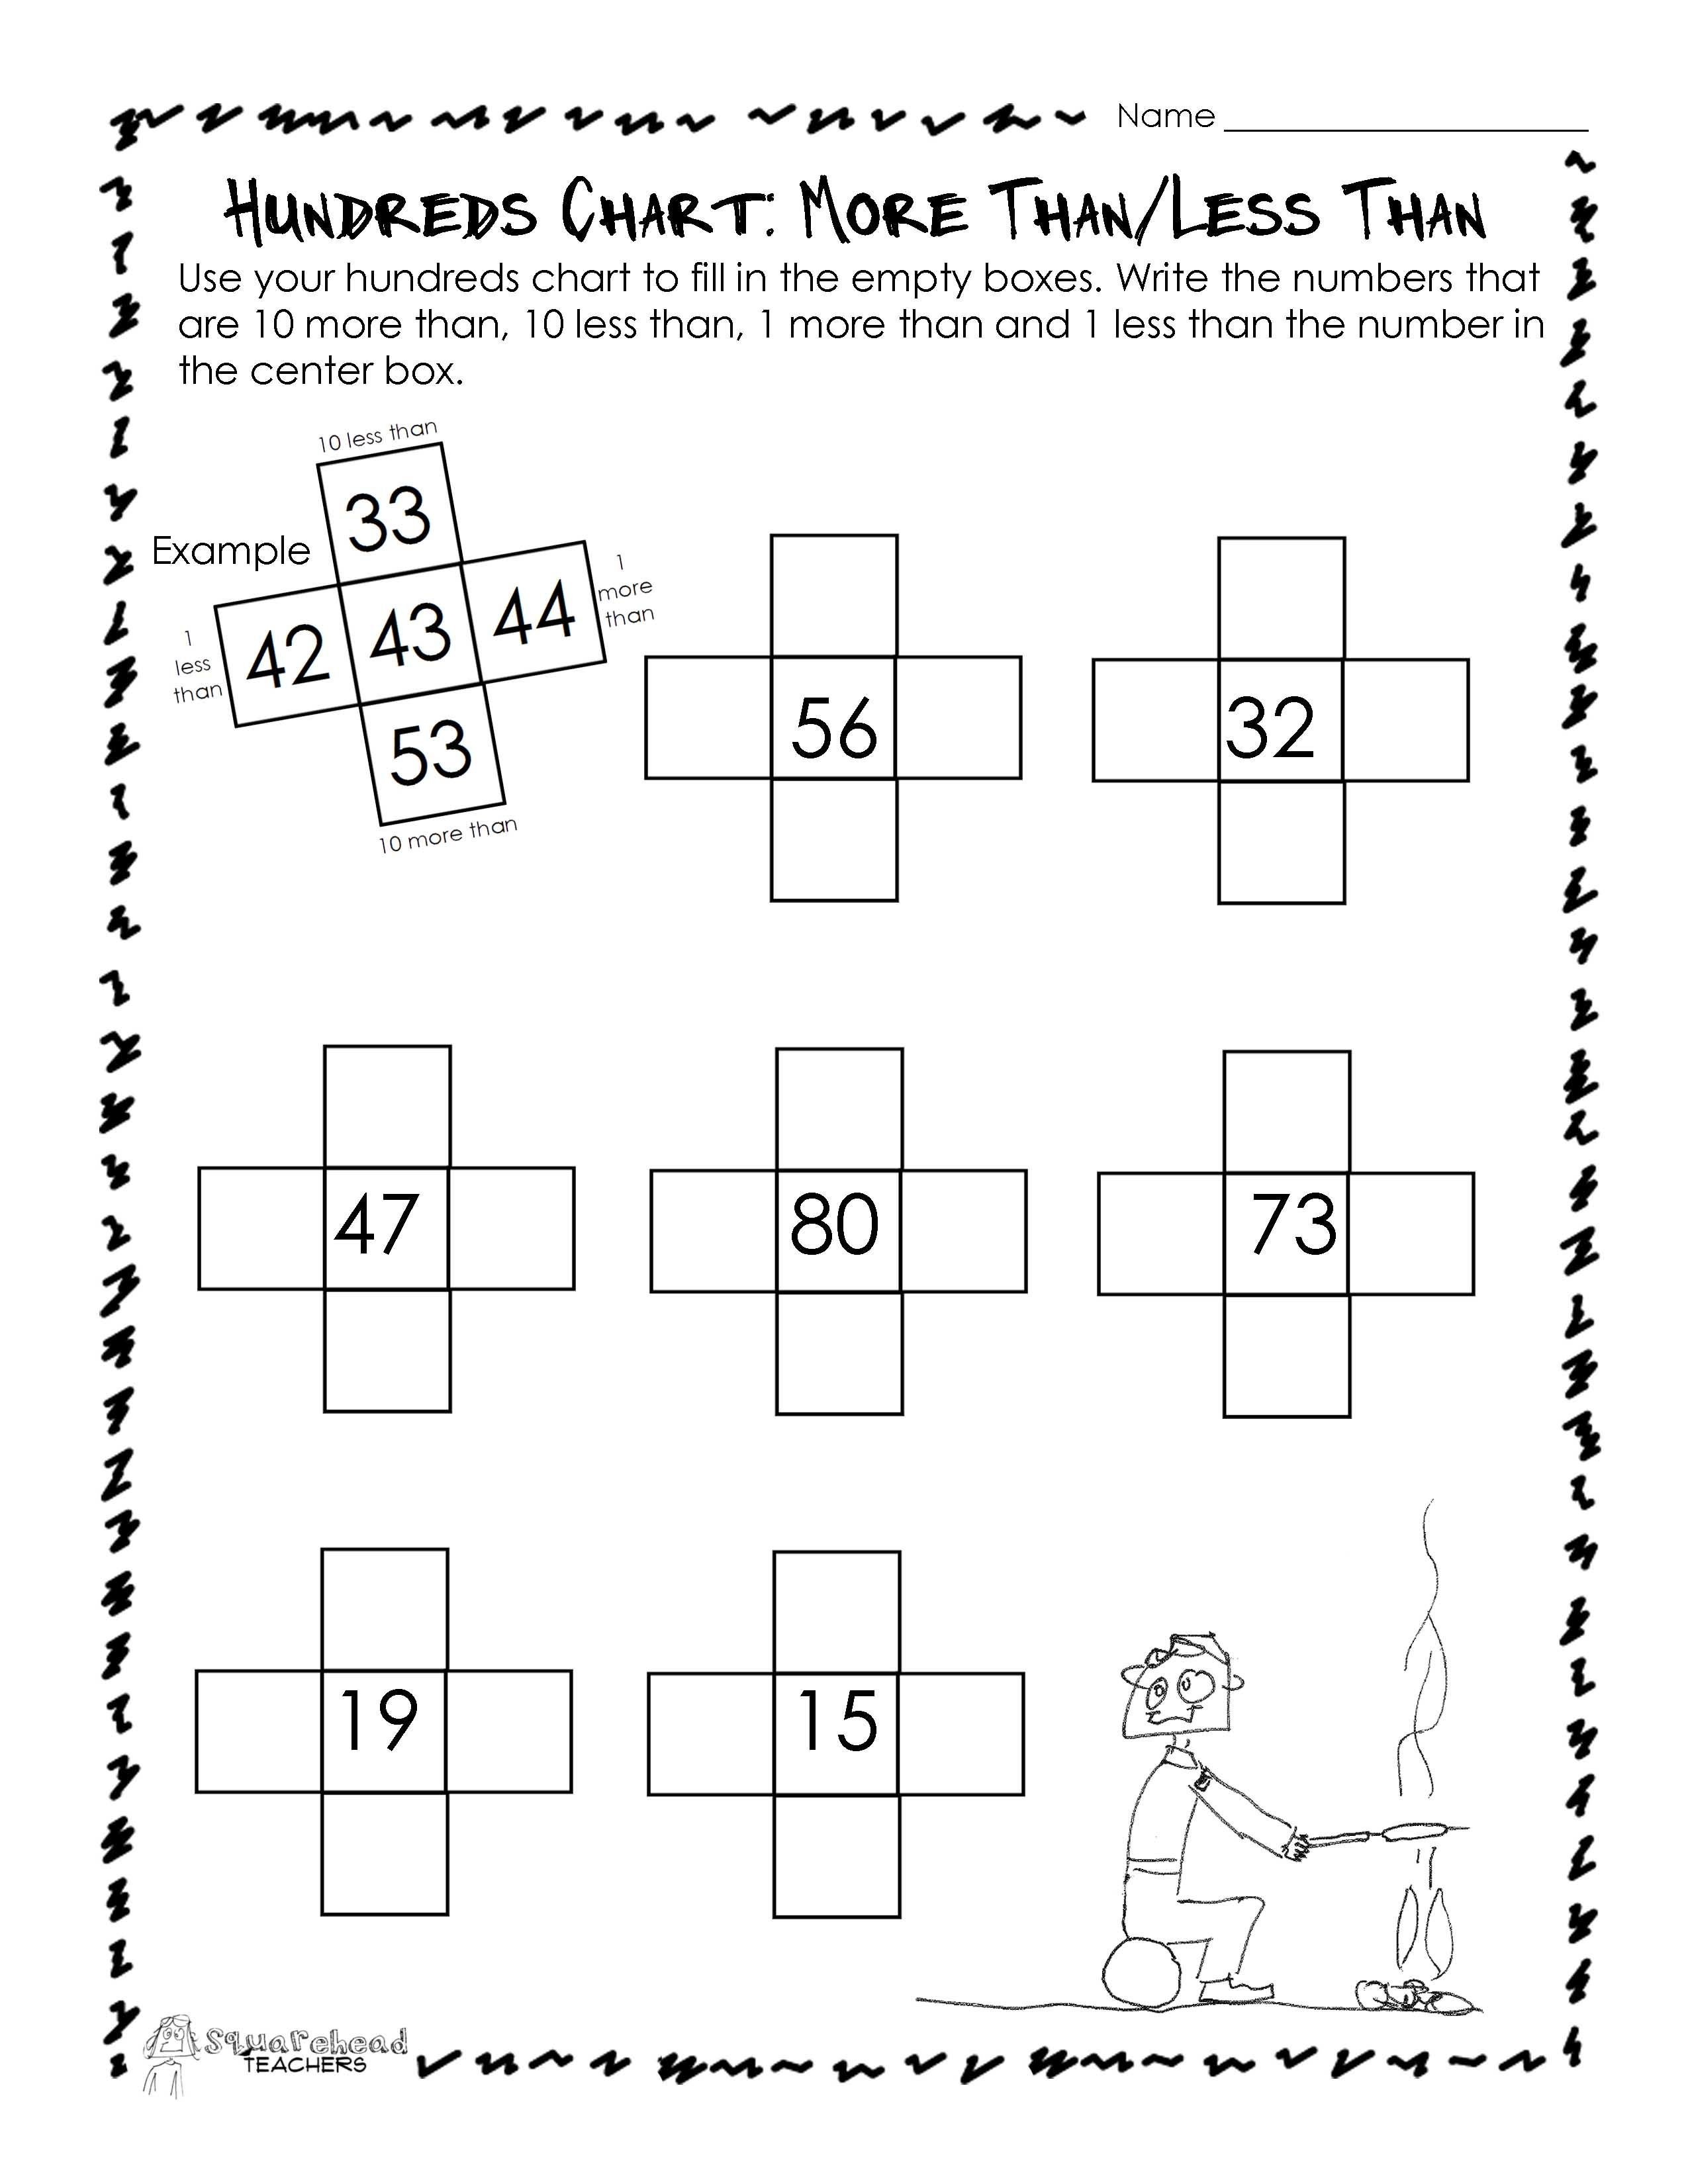 worksheet 10 More 10 Less Worksheet hundreds chart math pinterest worksheets and math